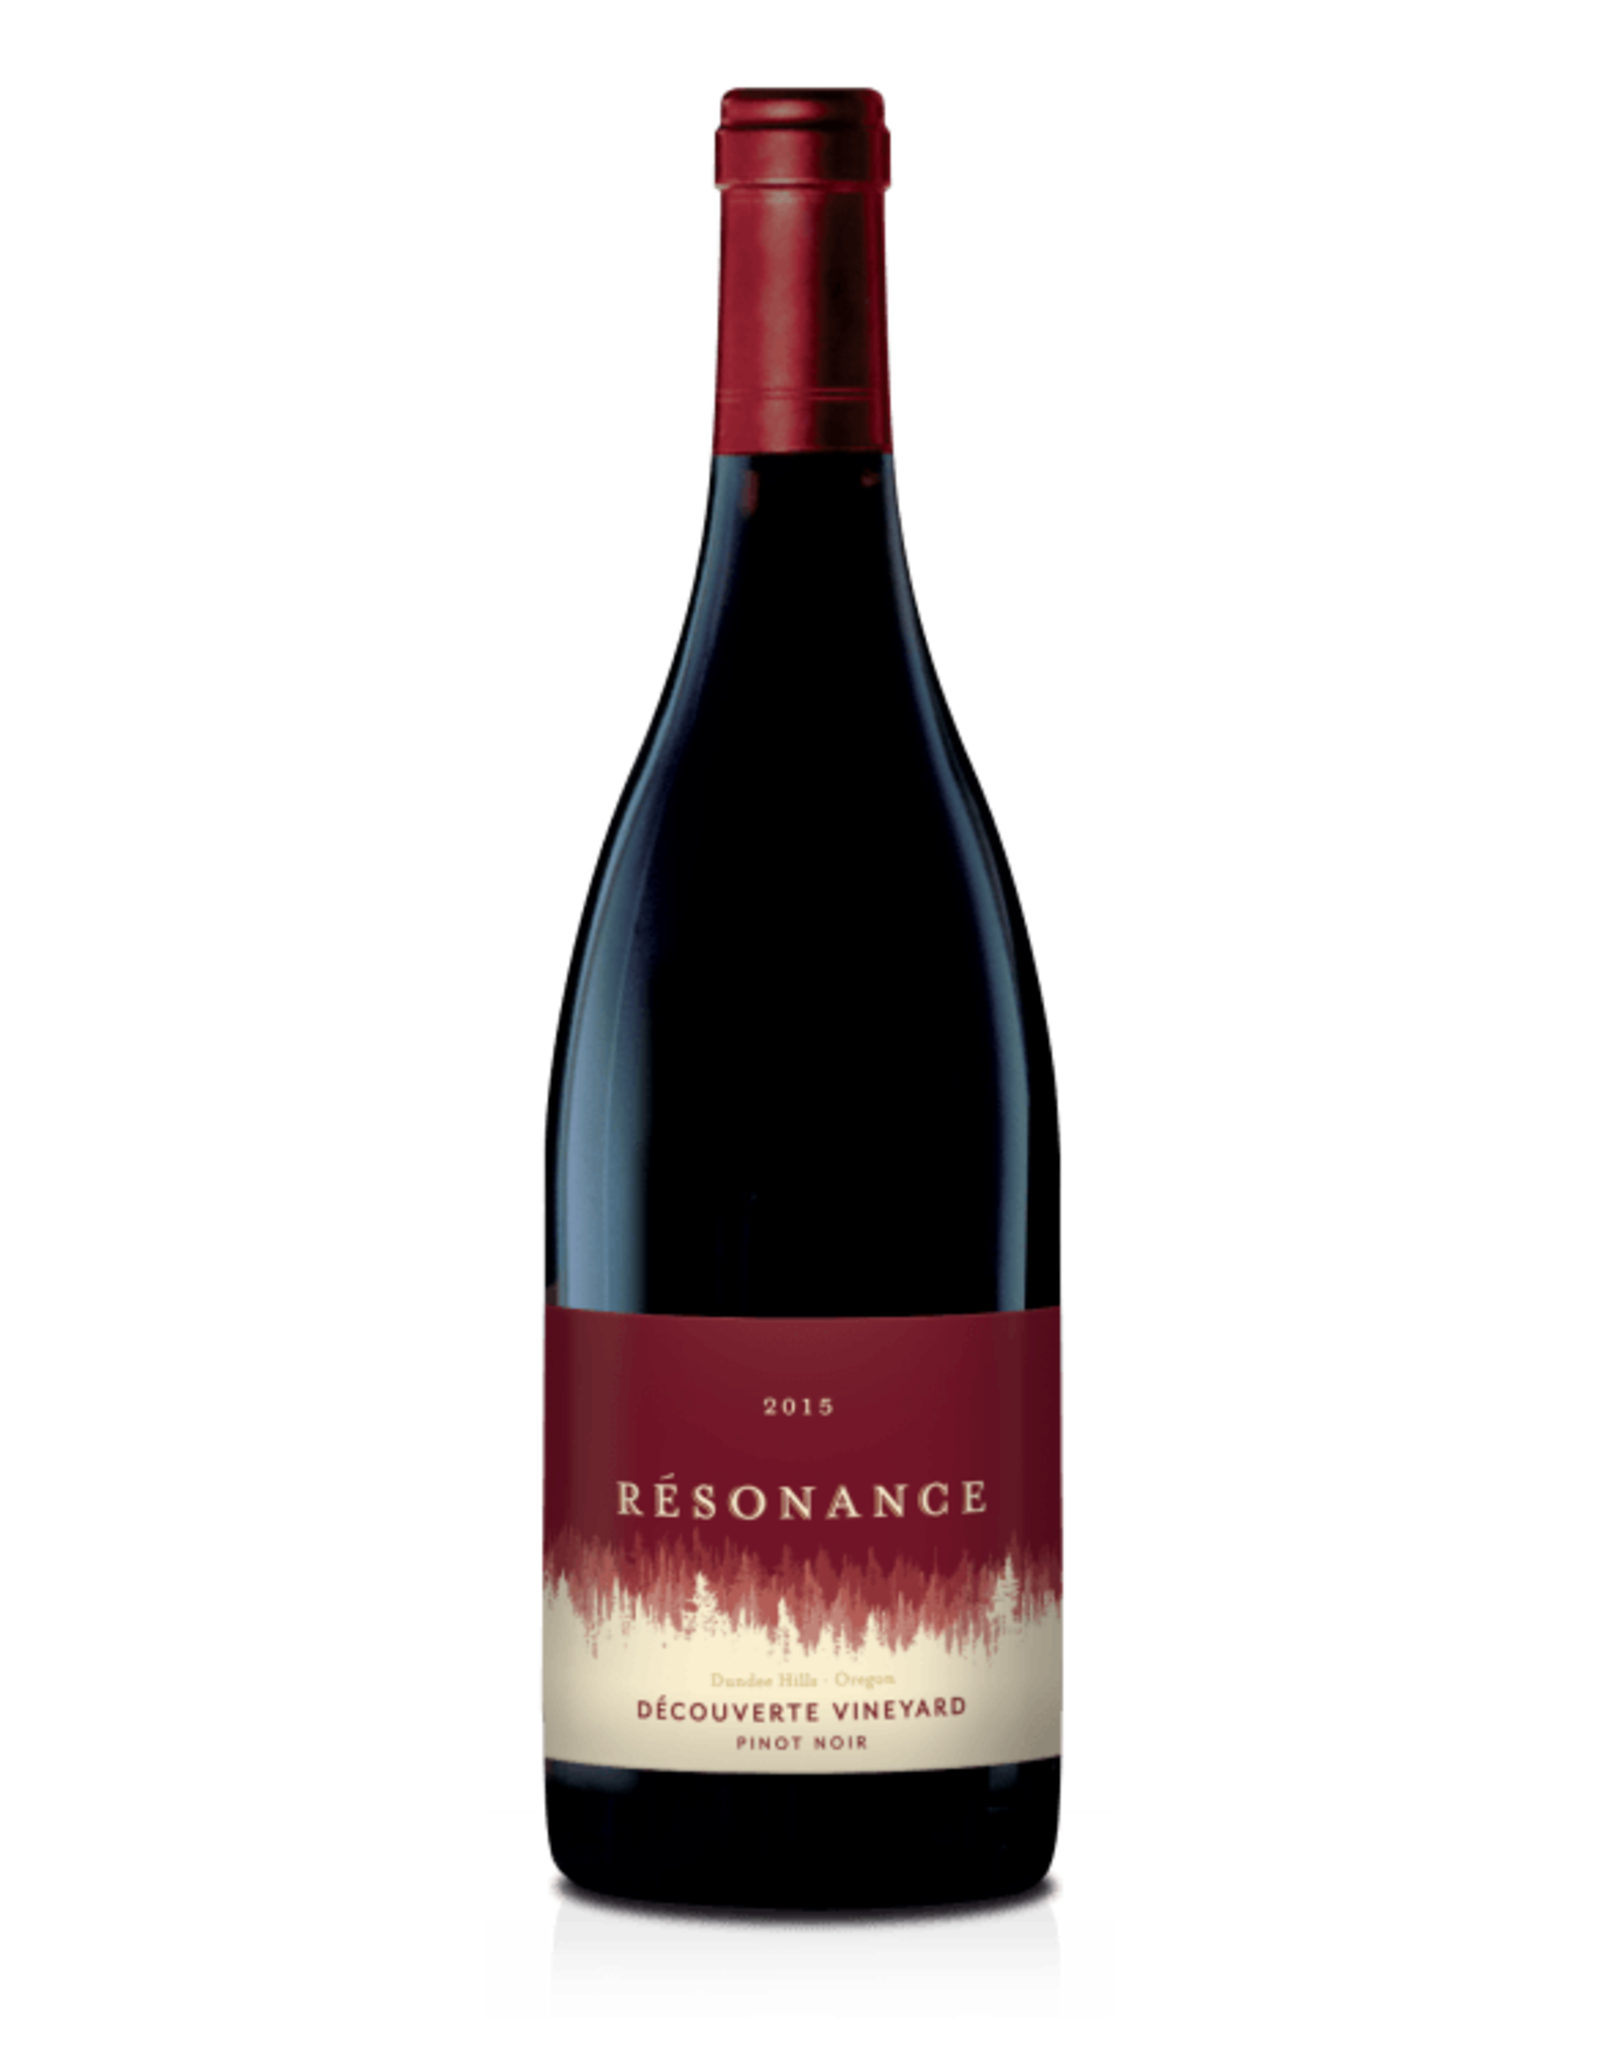 Resonance Decouverte Vineyard Pinot Noir 2015